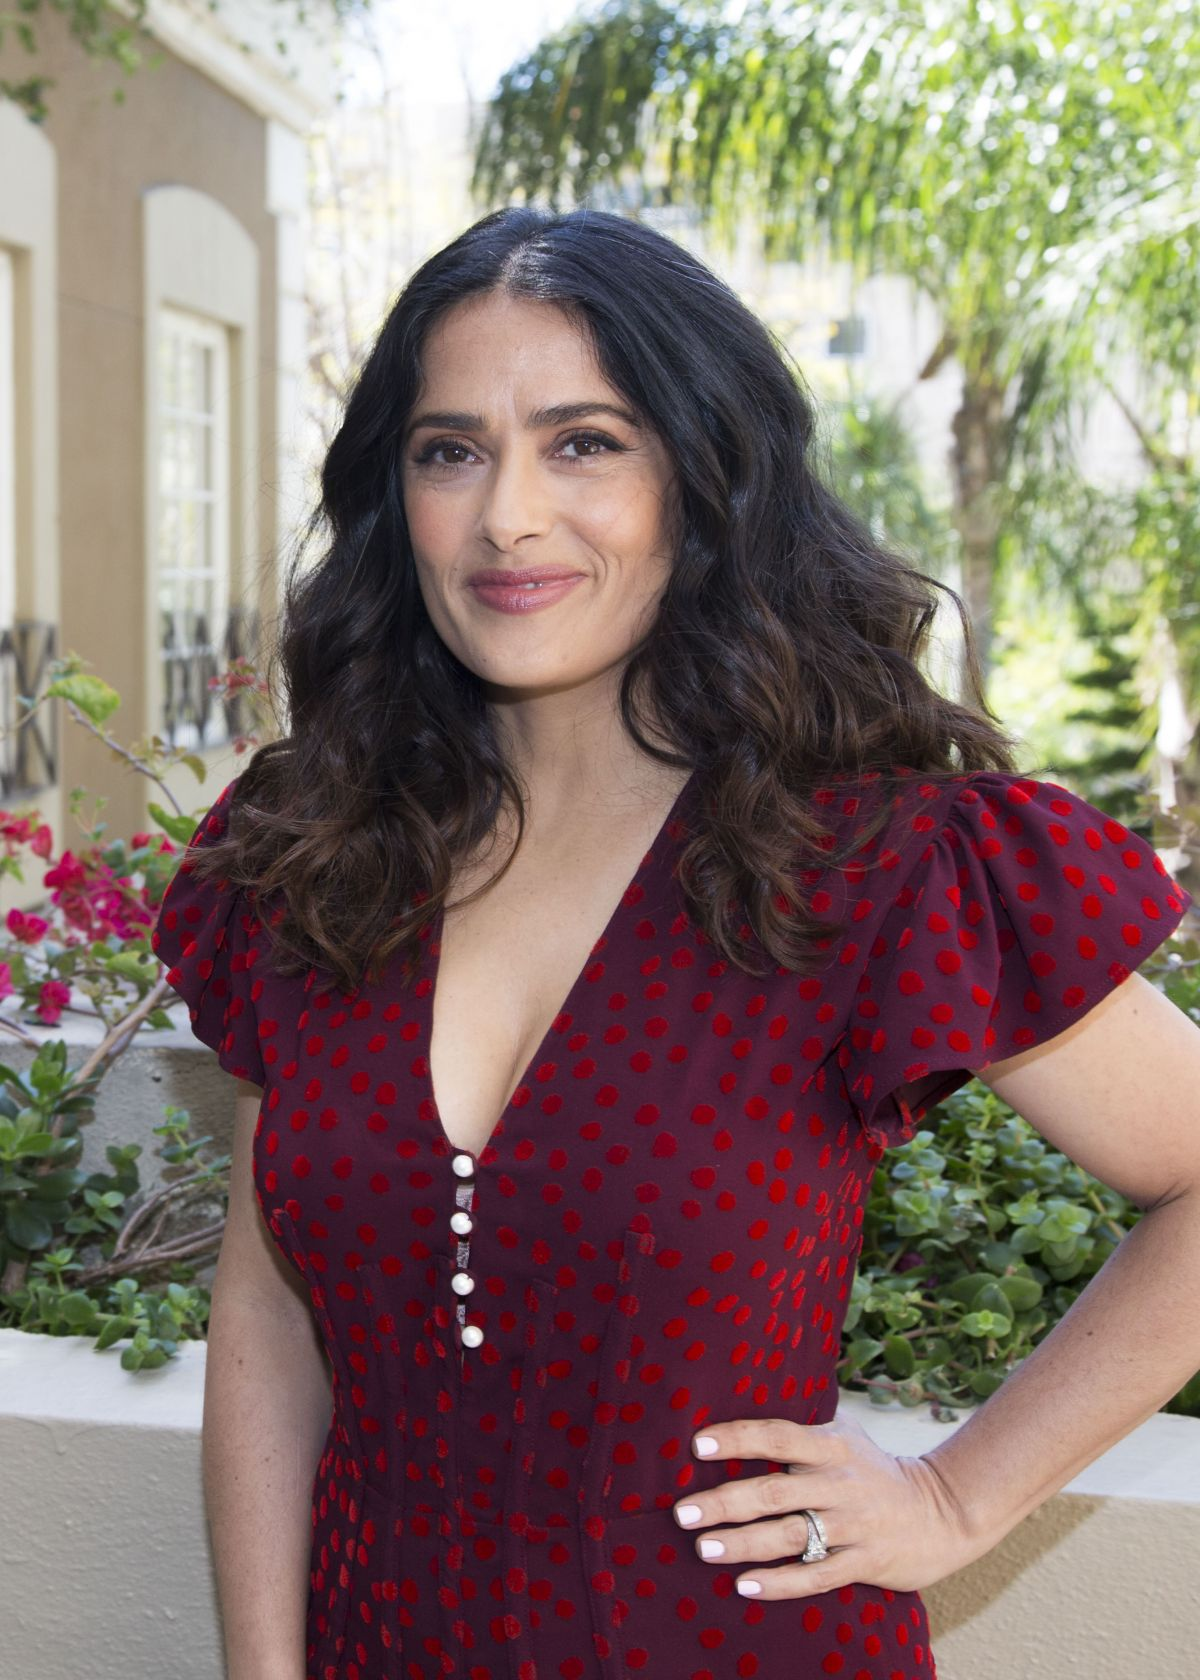 Salma hayek at how to be a latin lover press conference salma hayek at how to be a latin lover press conference portraits in beverly hills ccuart Choice Image